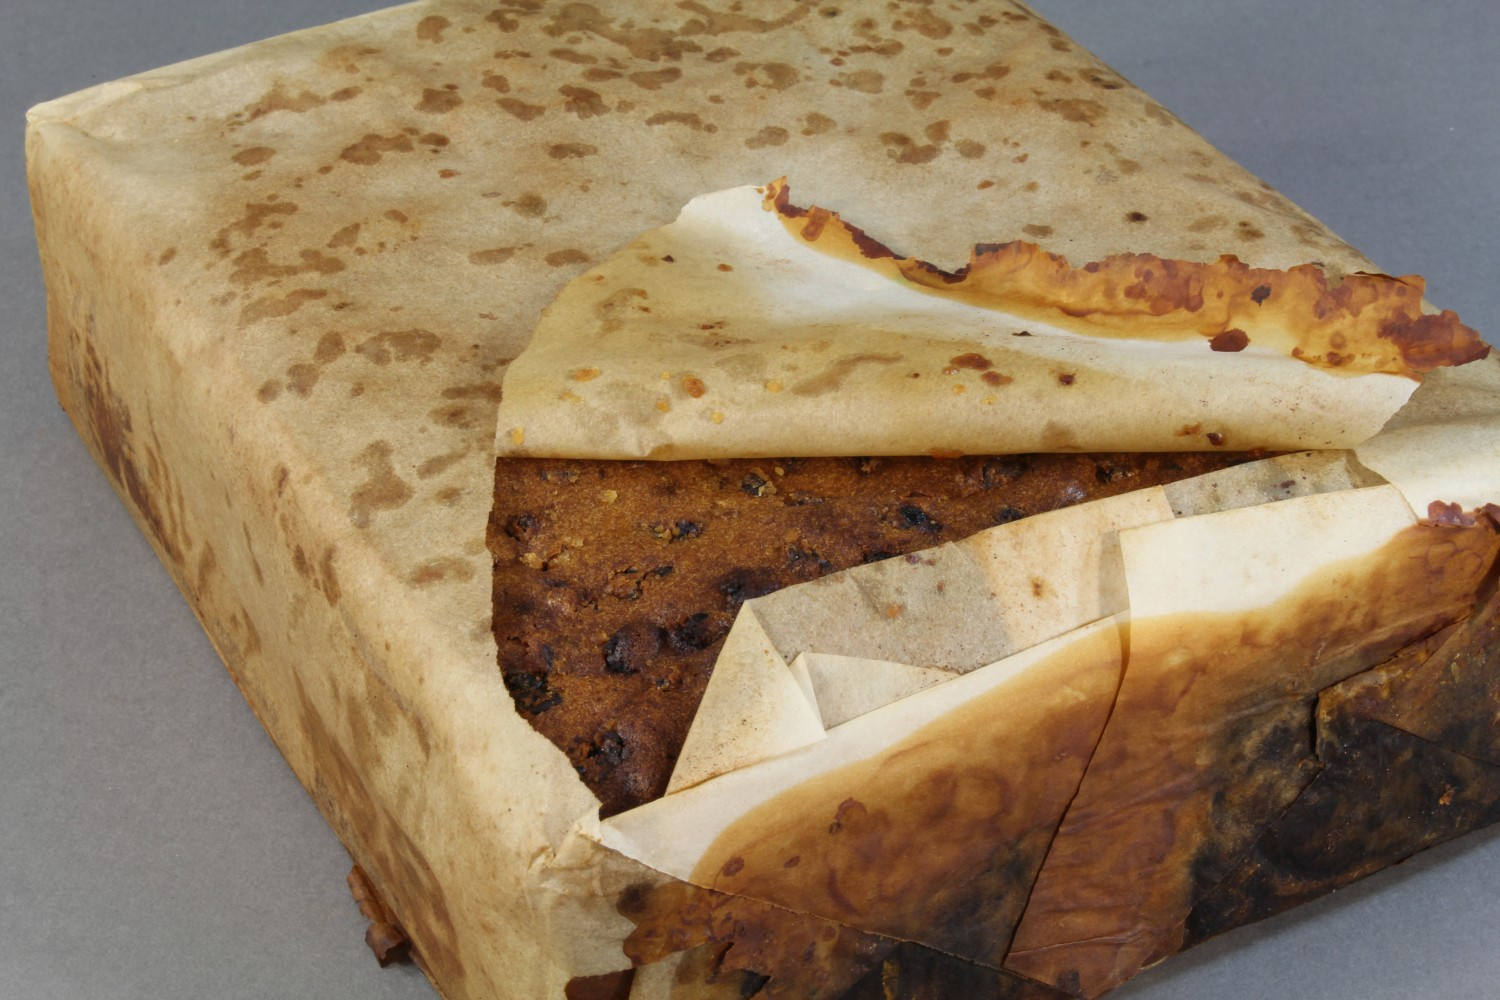 Antarctic Heritage Trust conservators found a 100 year old fruit cake among the artefacts from Cape Adare.